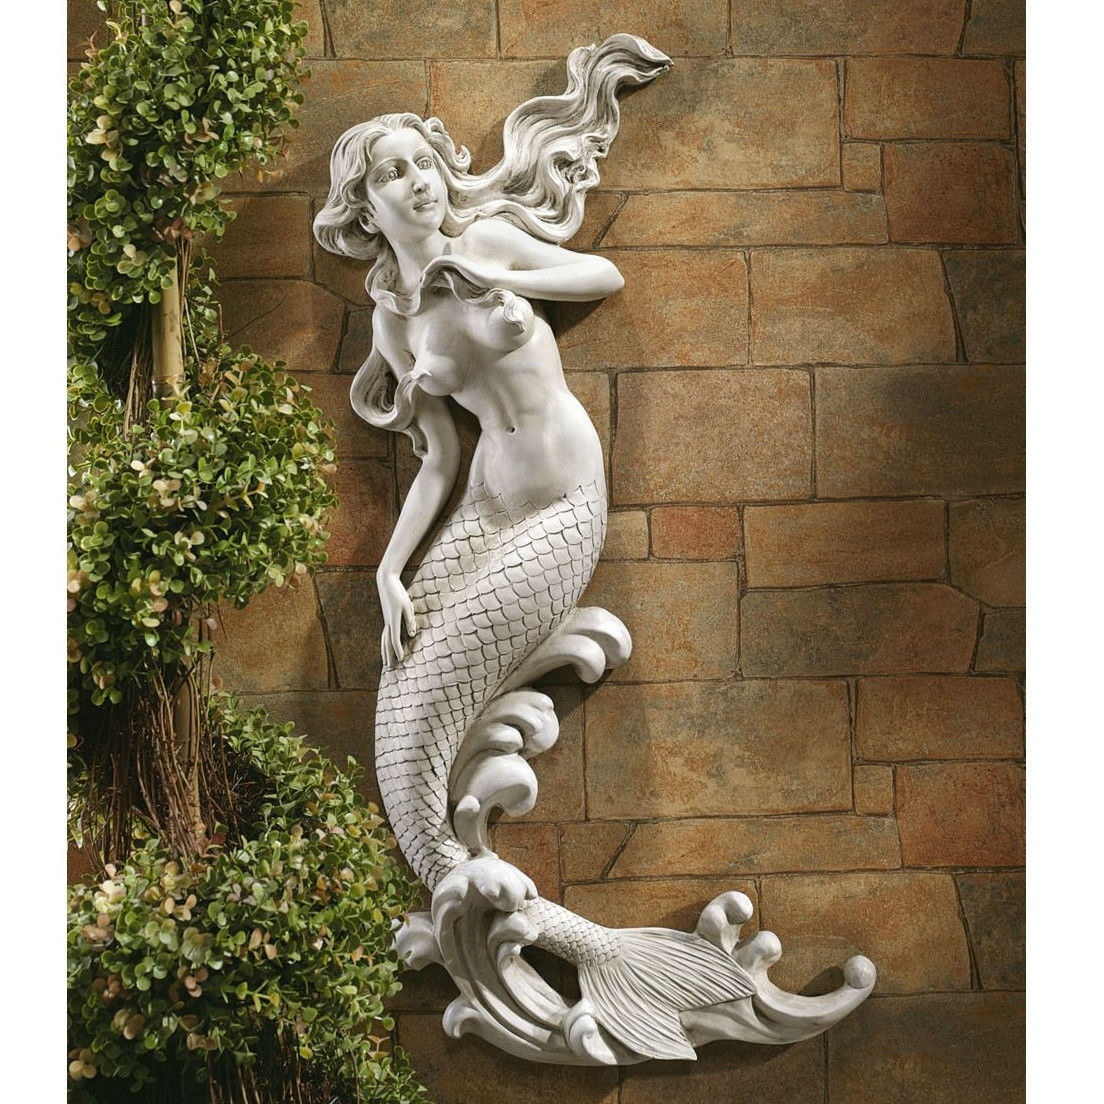 Outdoor Mermaid Wall Statue by Candice Pennington - 31 Inch